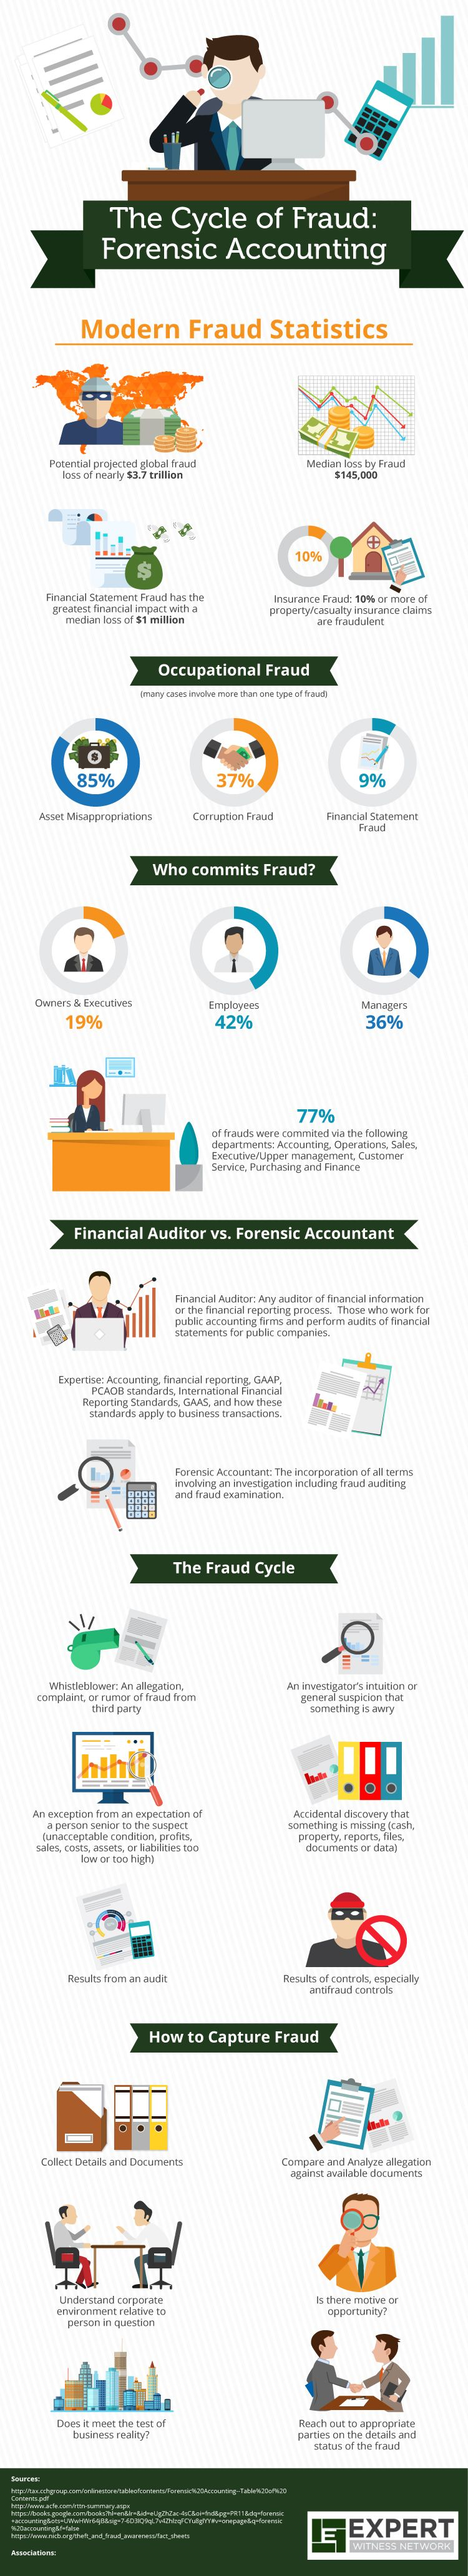 Best 25 forensic accounting ideas on pinterest accounting major best 25 forensic accounting ideas on pinterest accounting major accounting help and accounting basics 1betcityfo Image collections